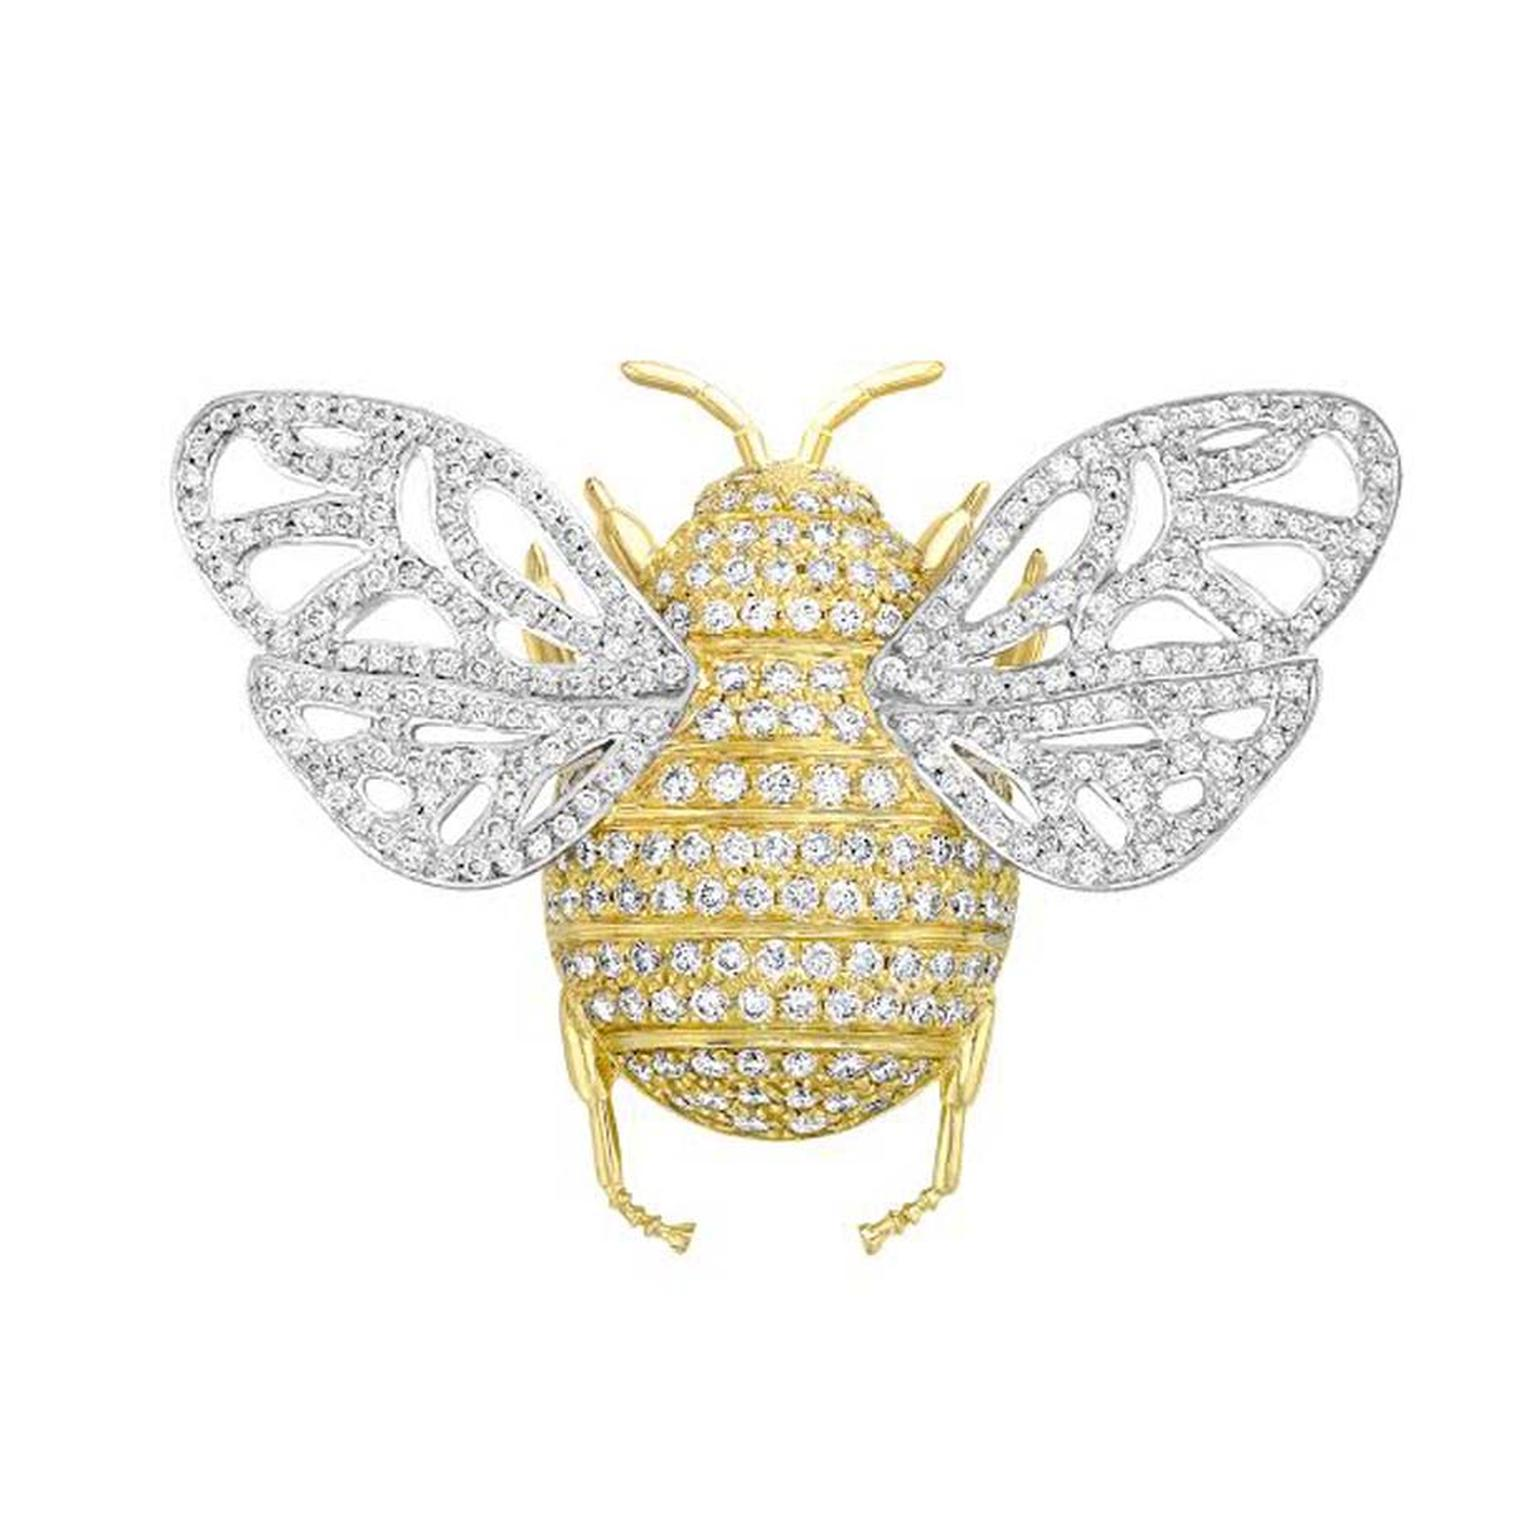 Pavé diamond bee brooch by Theo Fennell that can also be worn as a pendant in 18ct white and yellow gold set with 1.04ct of diamonds.